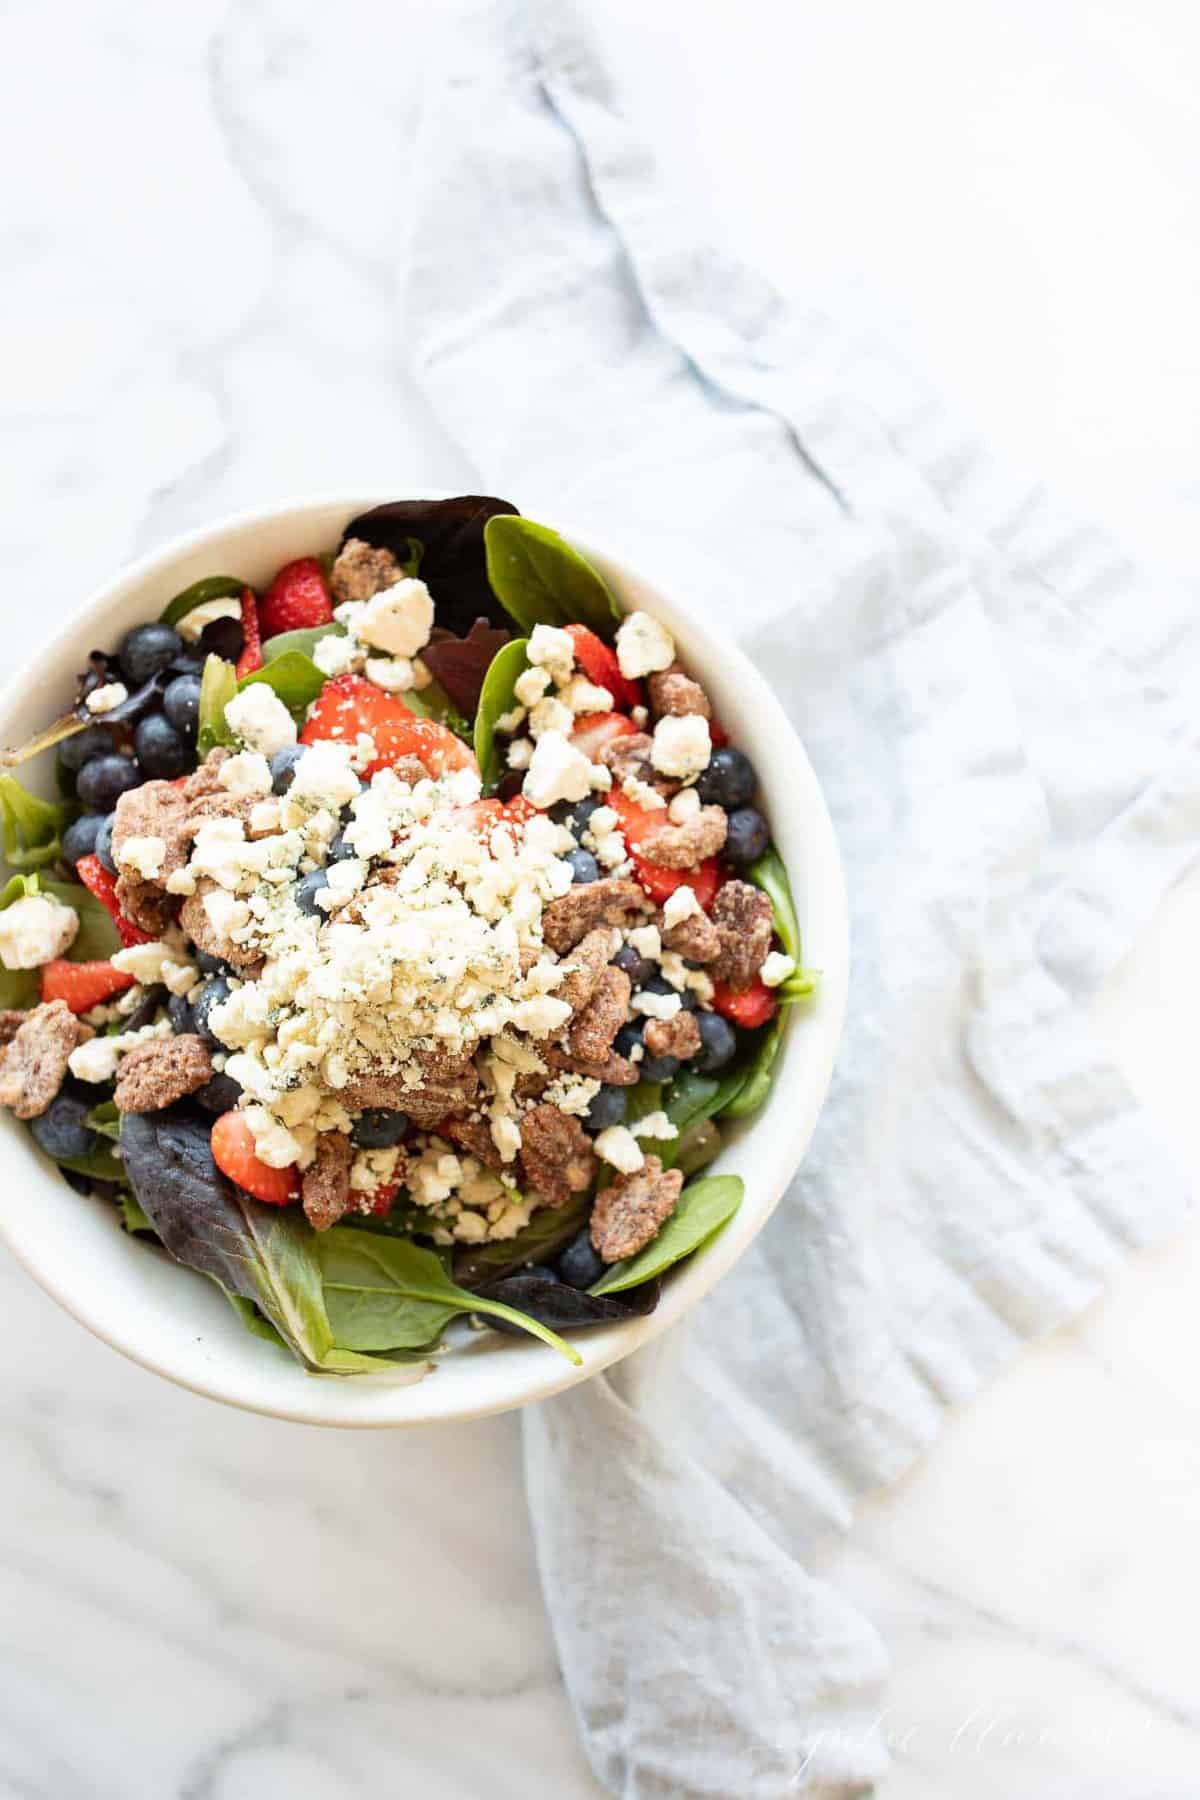 A white bowl full of a fresh spring mix with berries and nuts